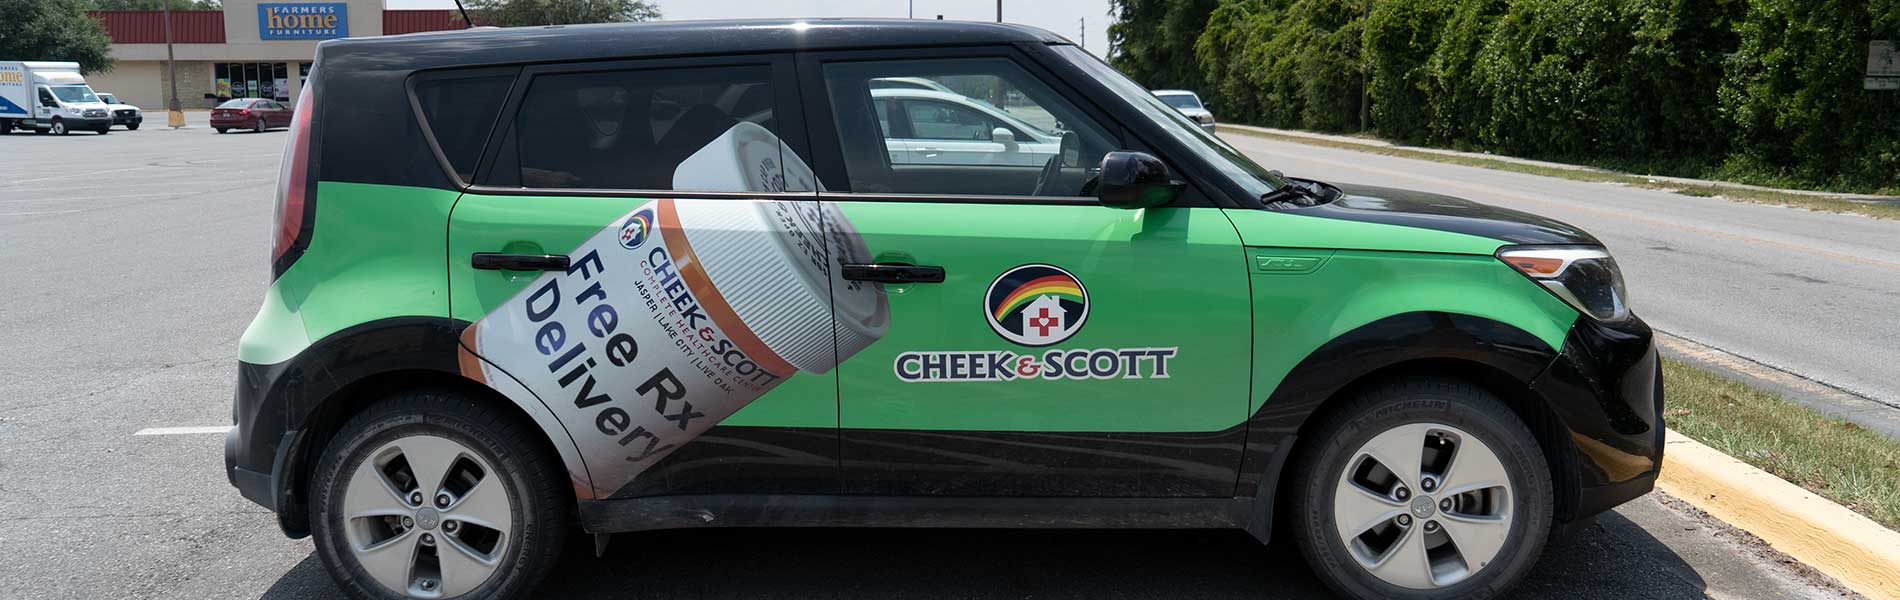 Cheek & Scott delivery car